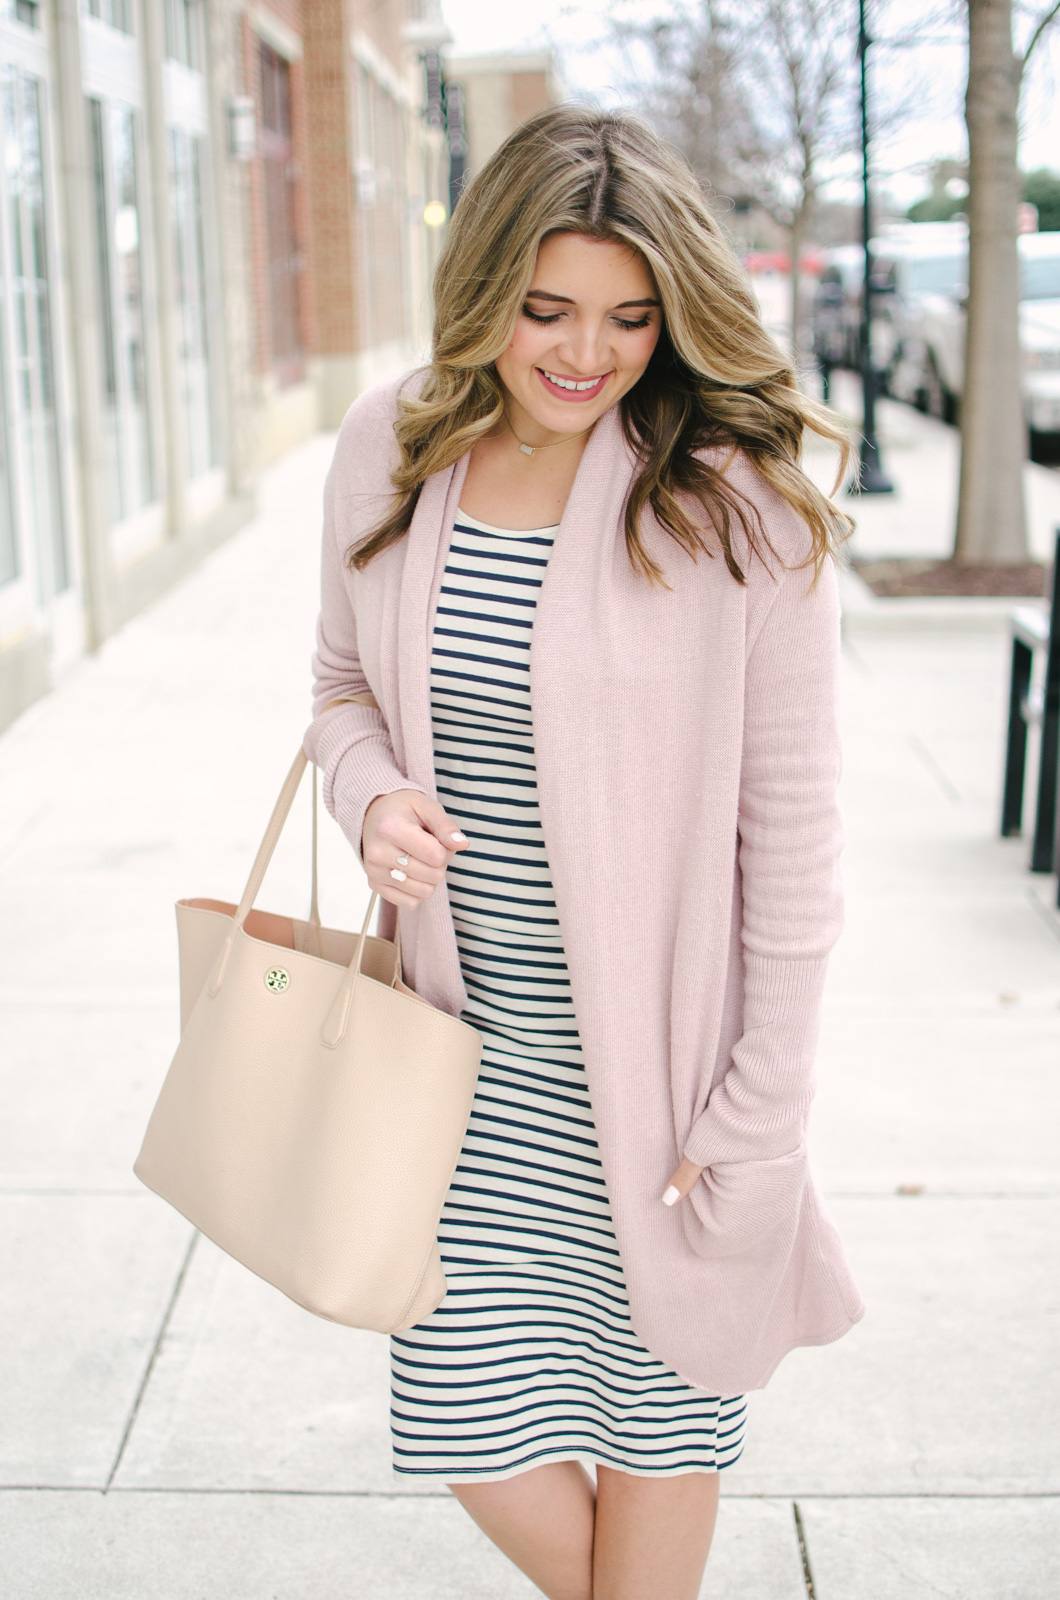 striped dress two ways - Need spring outfit inspo? See two ways to wear this dress at bylaurenm.com!